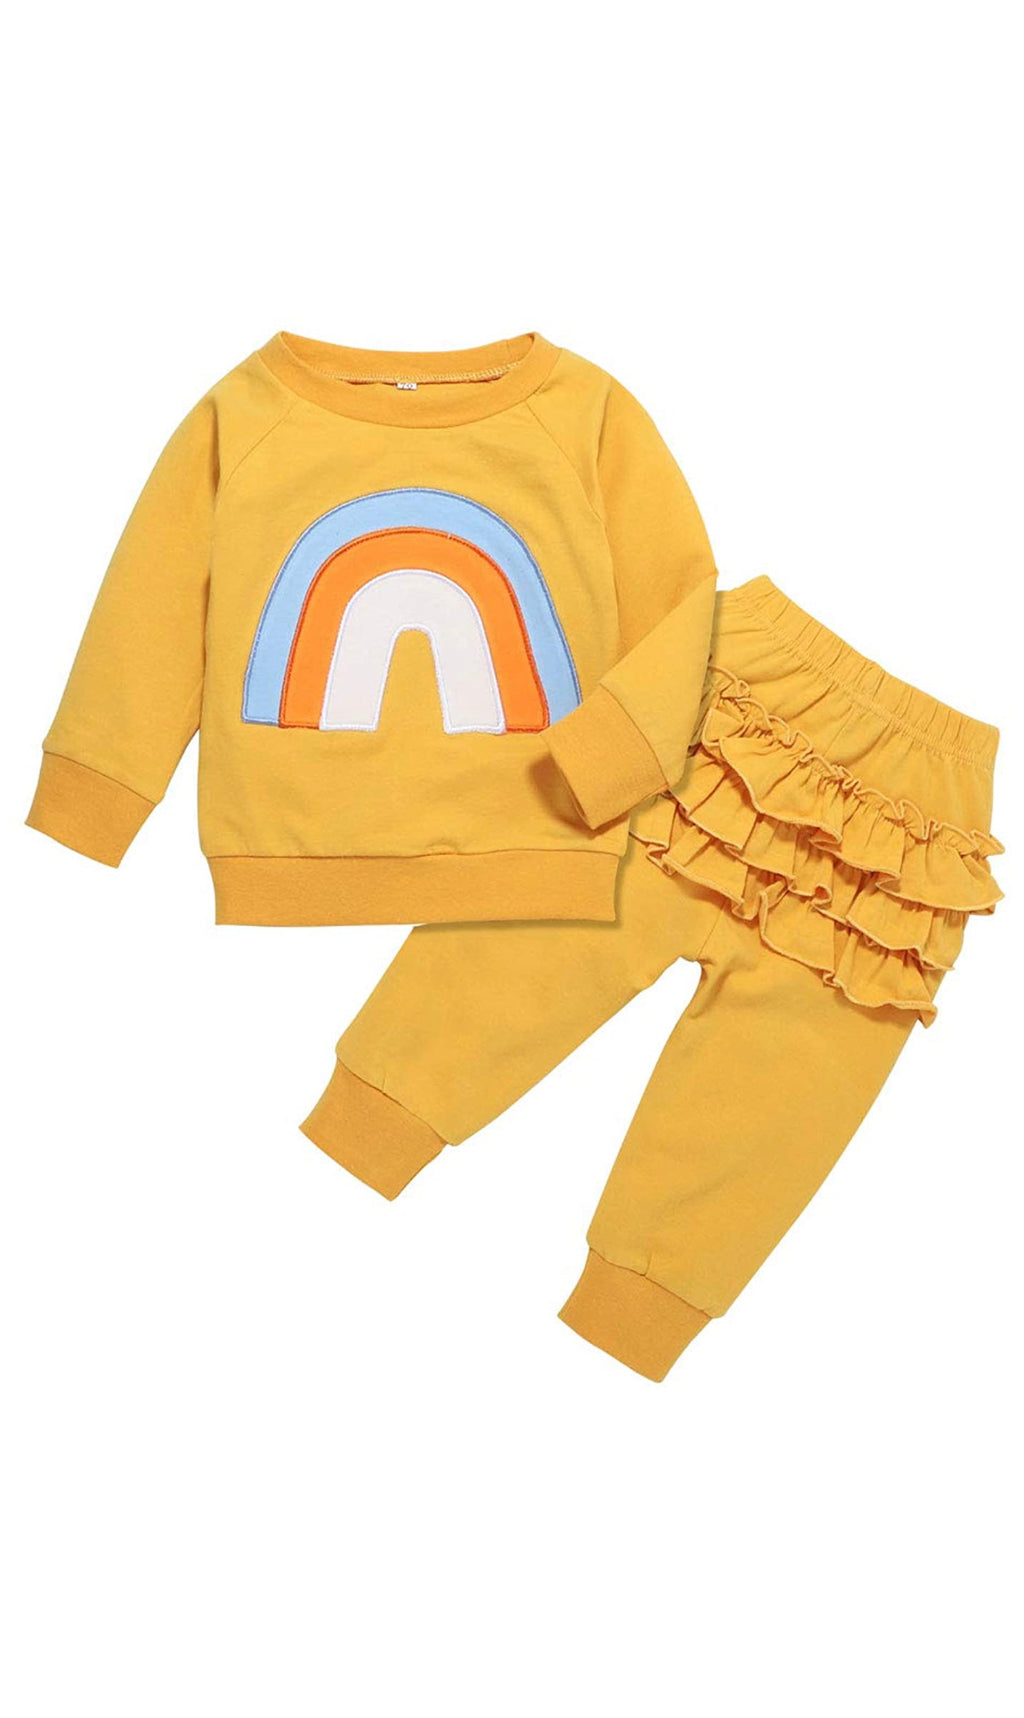 Rainbow Set - Yellow